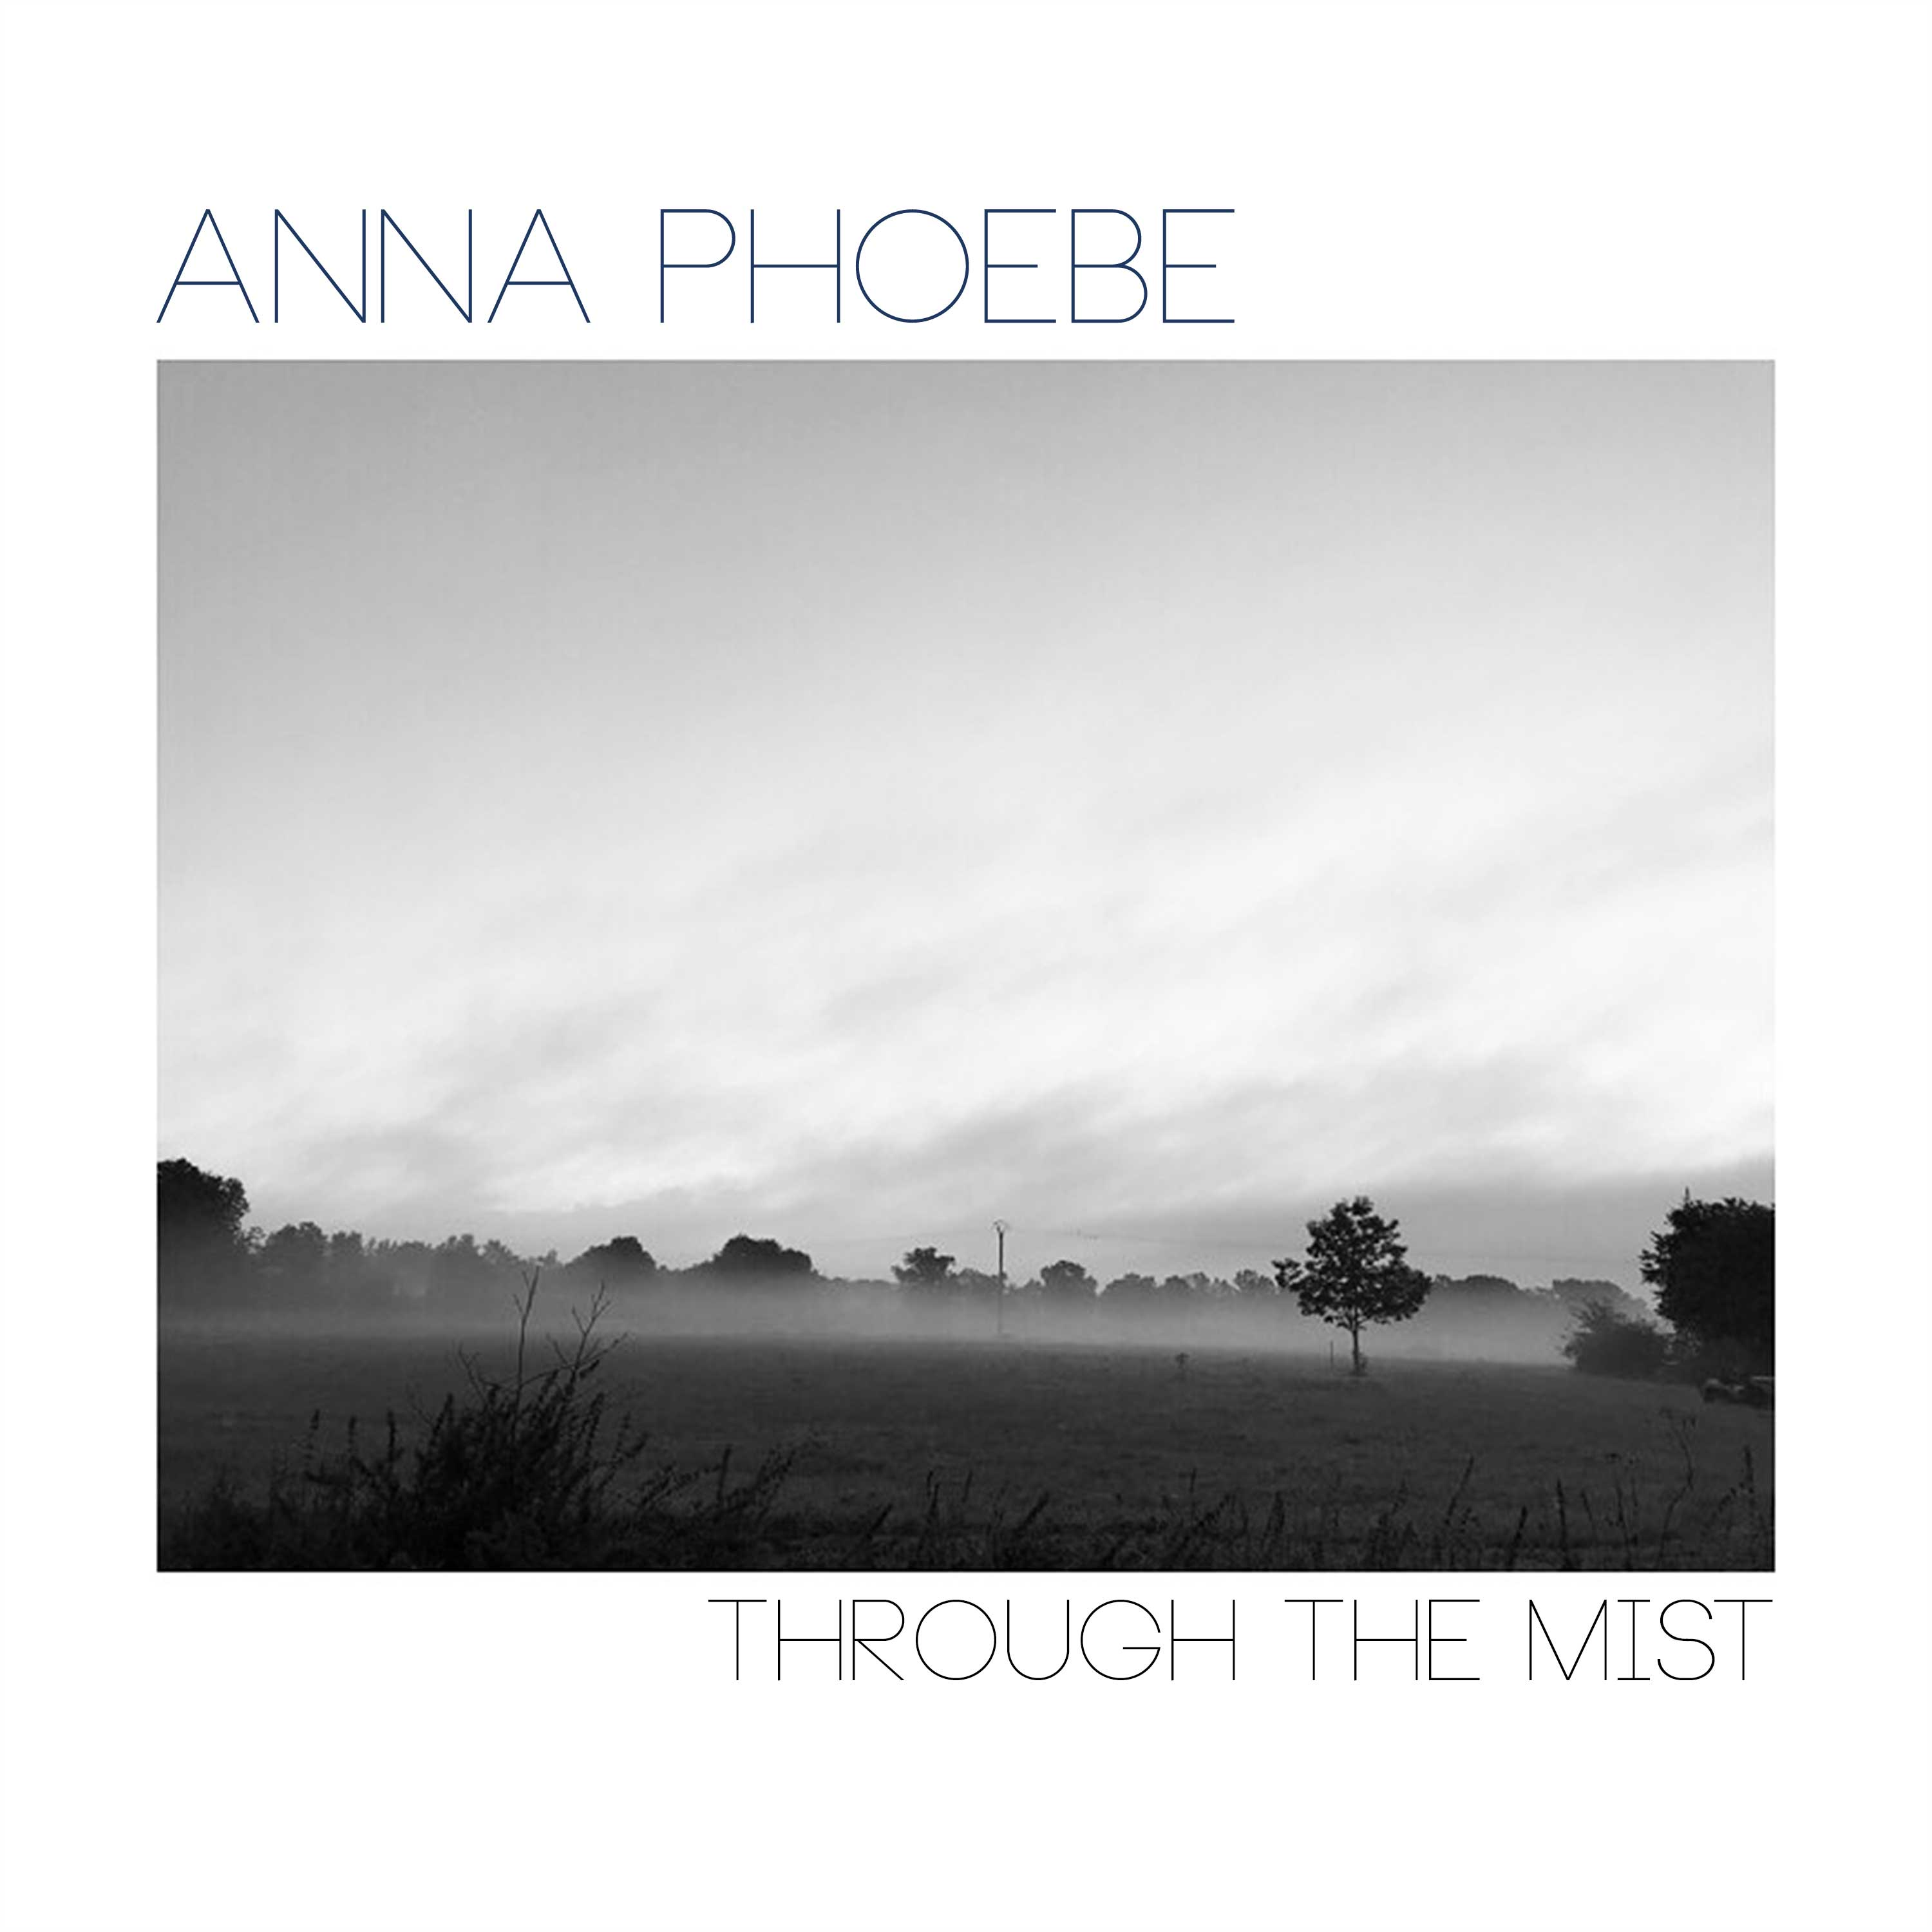 AnnaPhoebeThroughTheMist